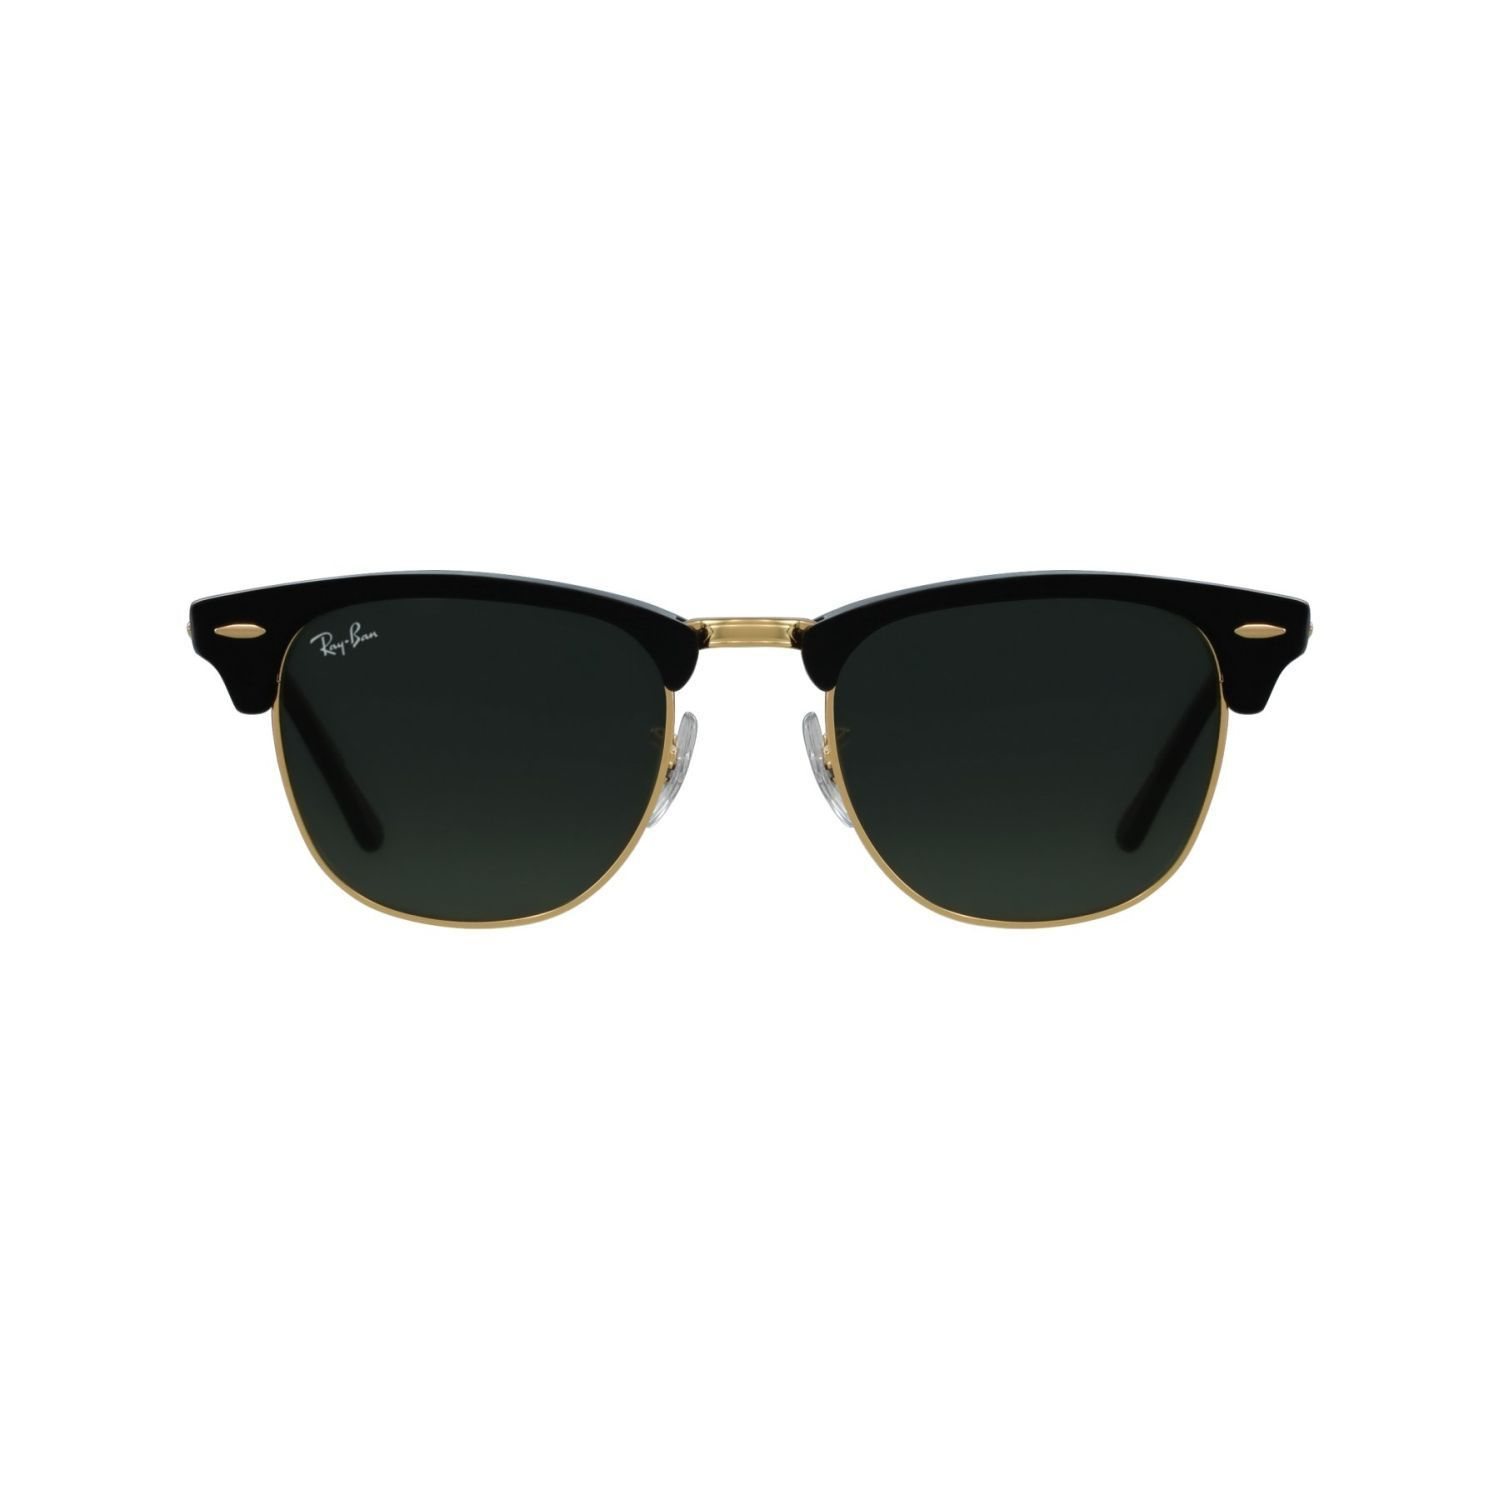 4813273e2a Ray-Ban RB3016-W0365 Clubmaster Sunglasses Black Frame Green ...